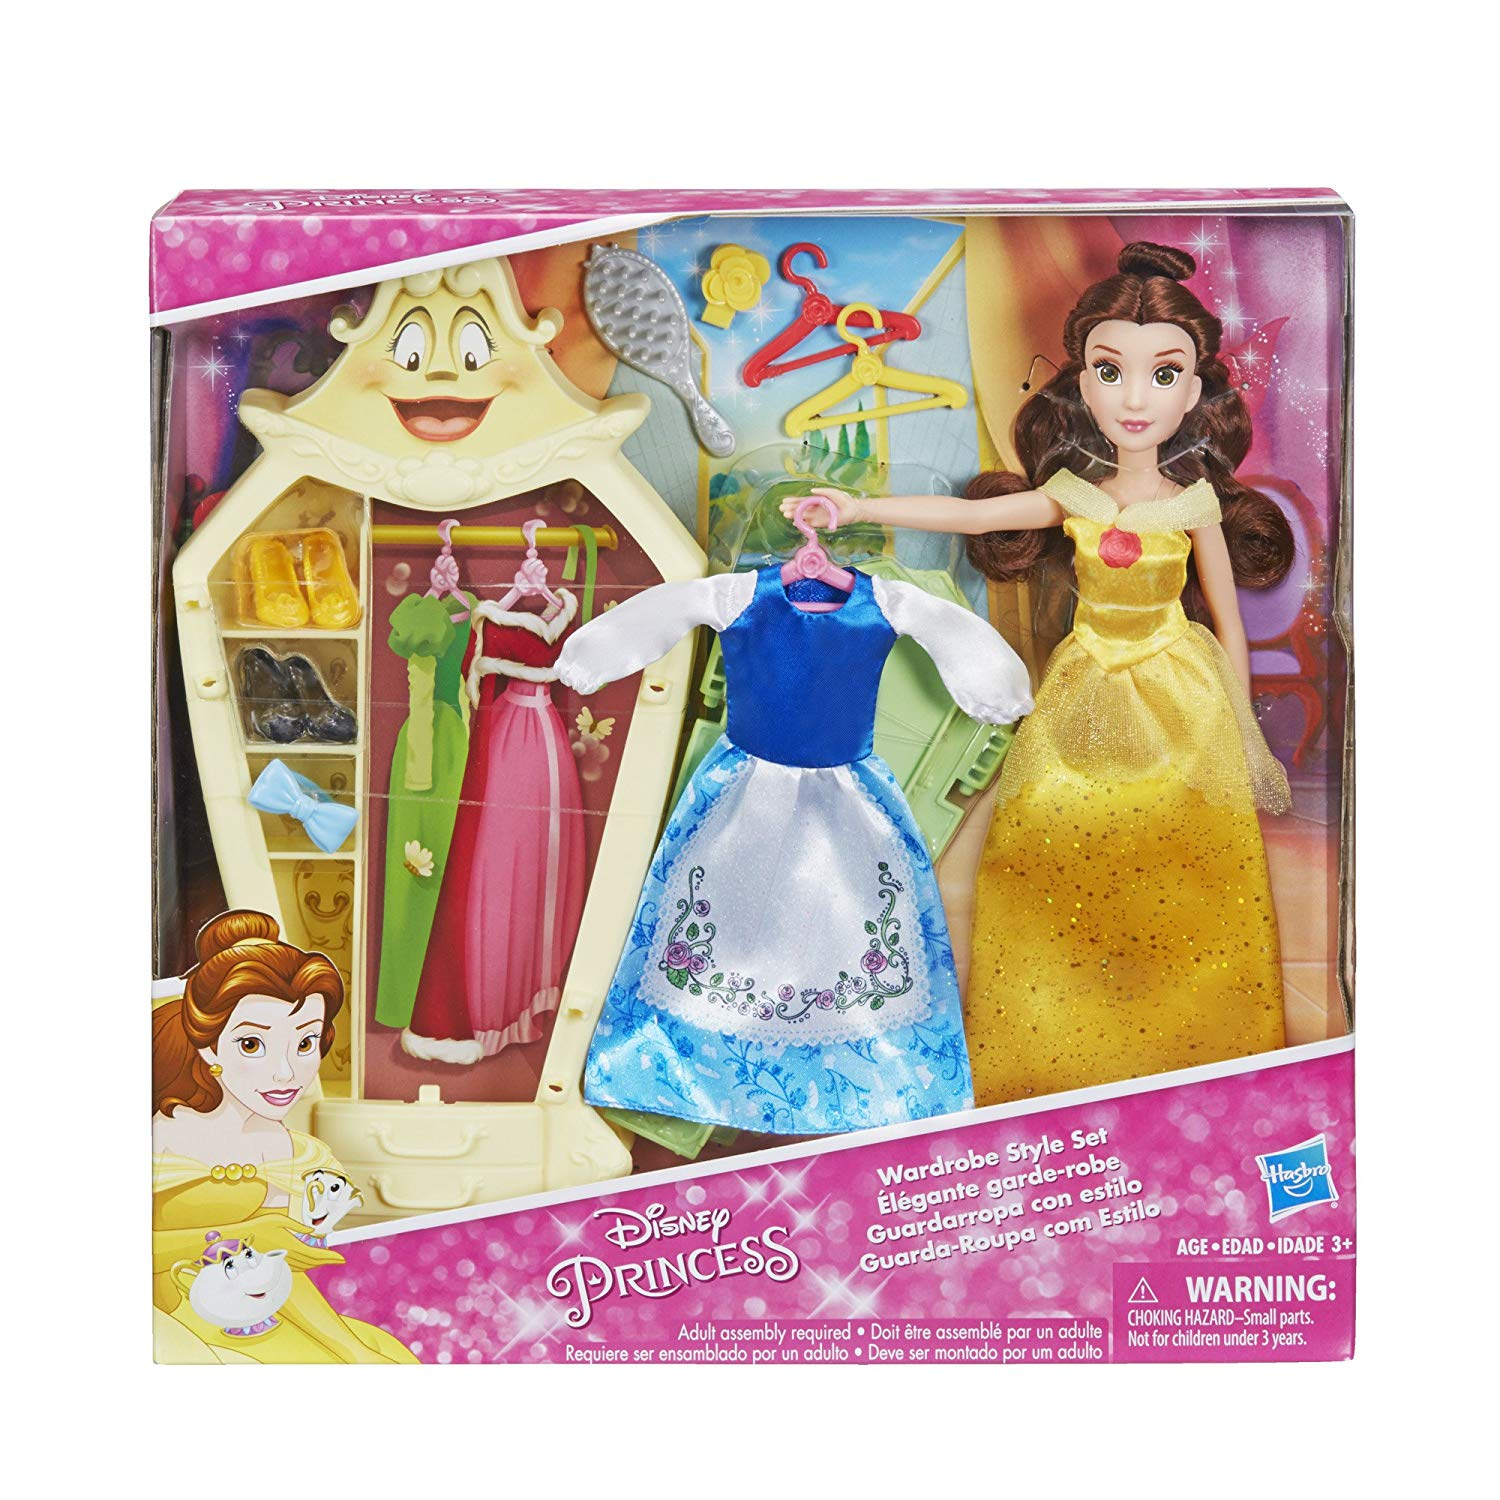 Garderobe Vintage Amazon Disney Princess Belle S Wardrobe Style Set Only 14 80 Reg